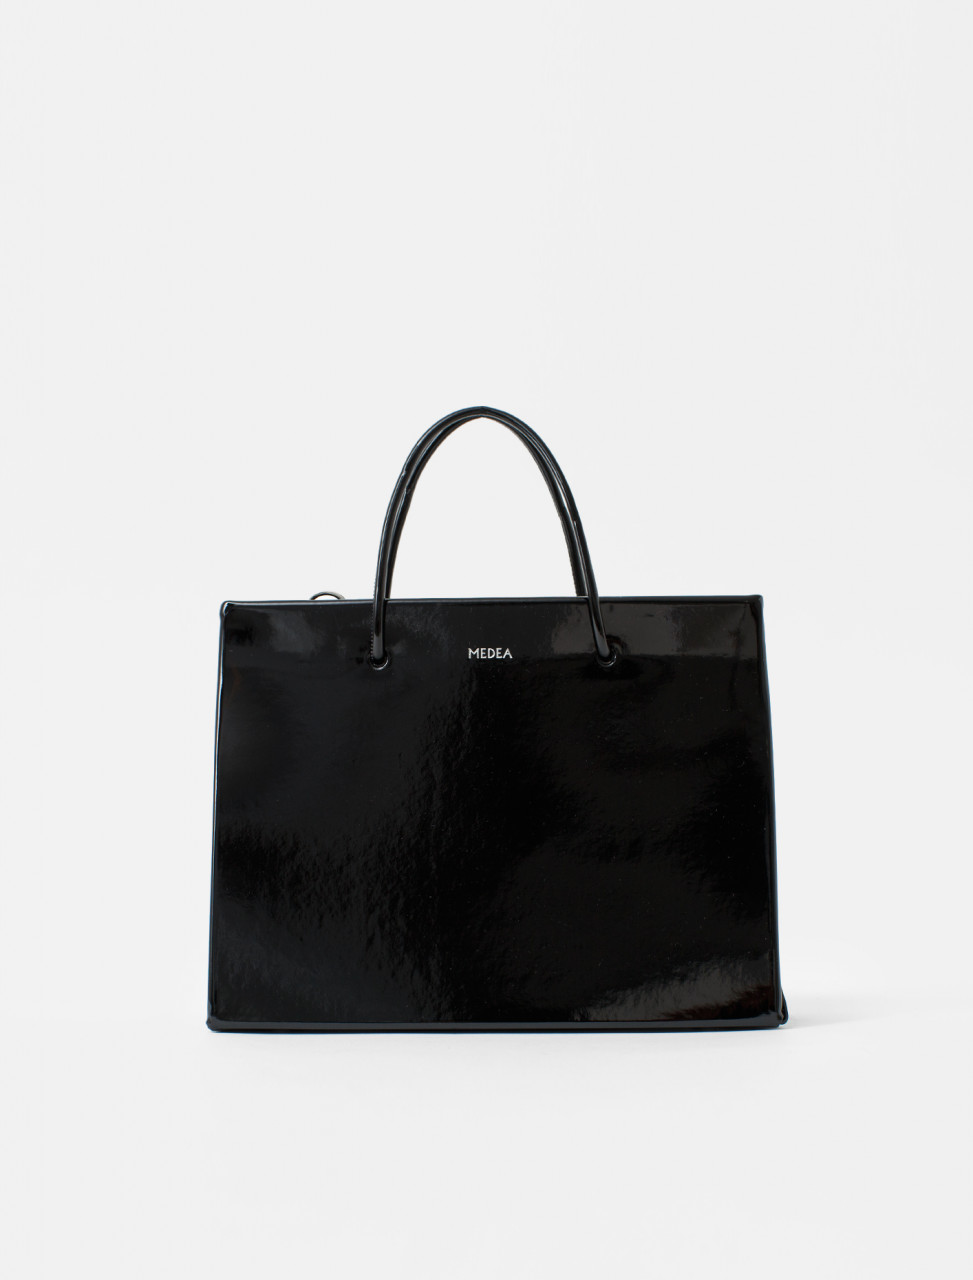 Hanna Tote in Black